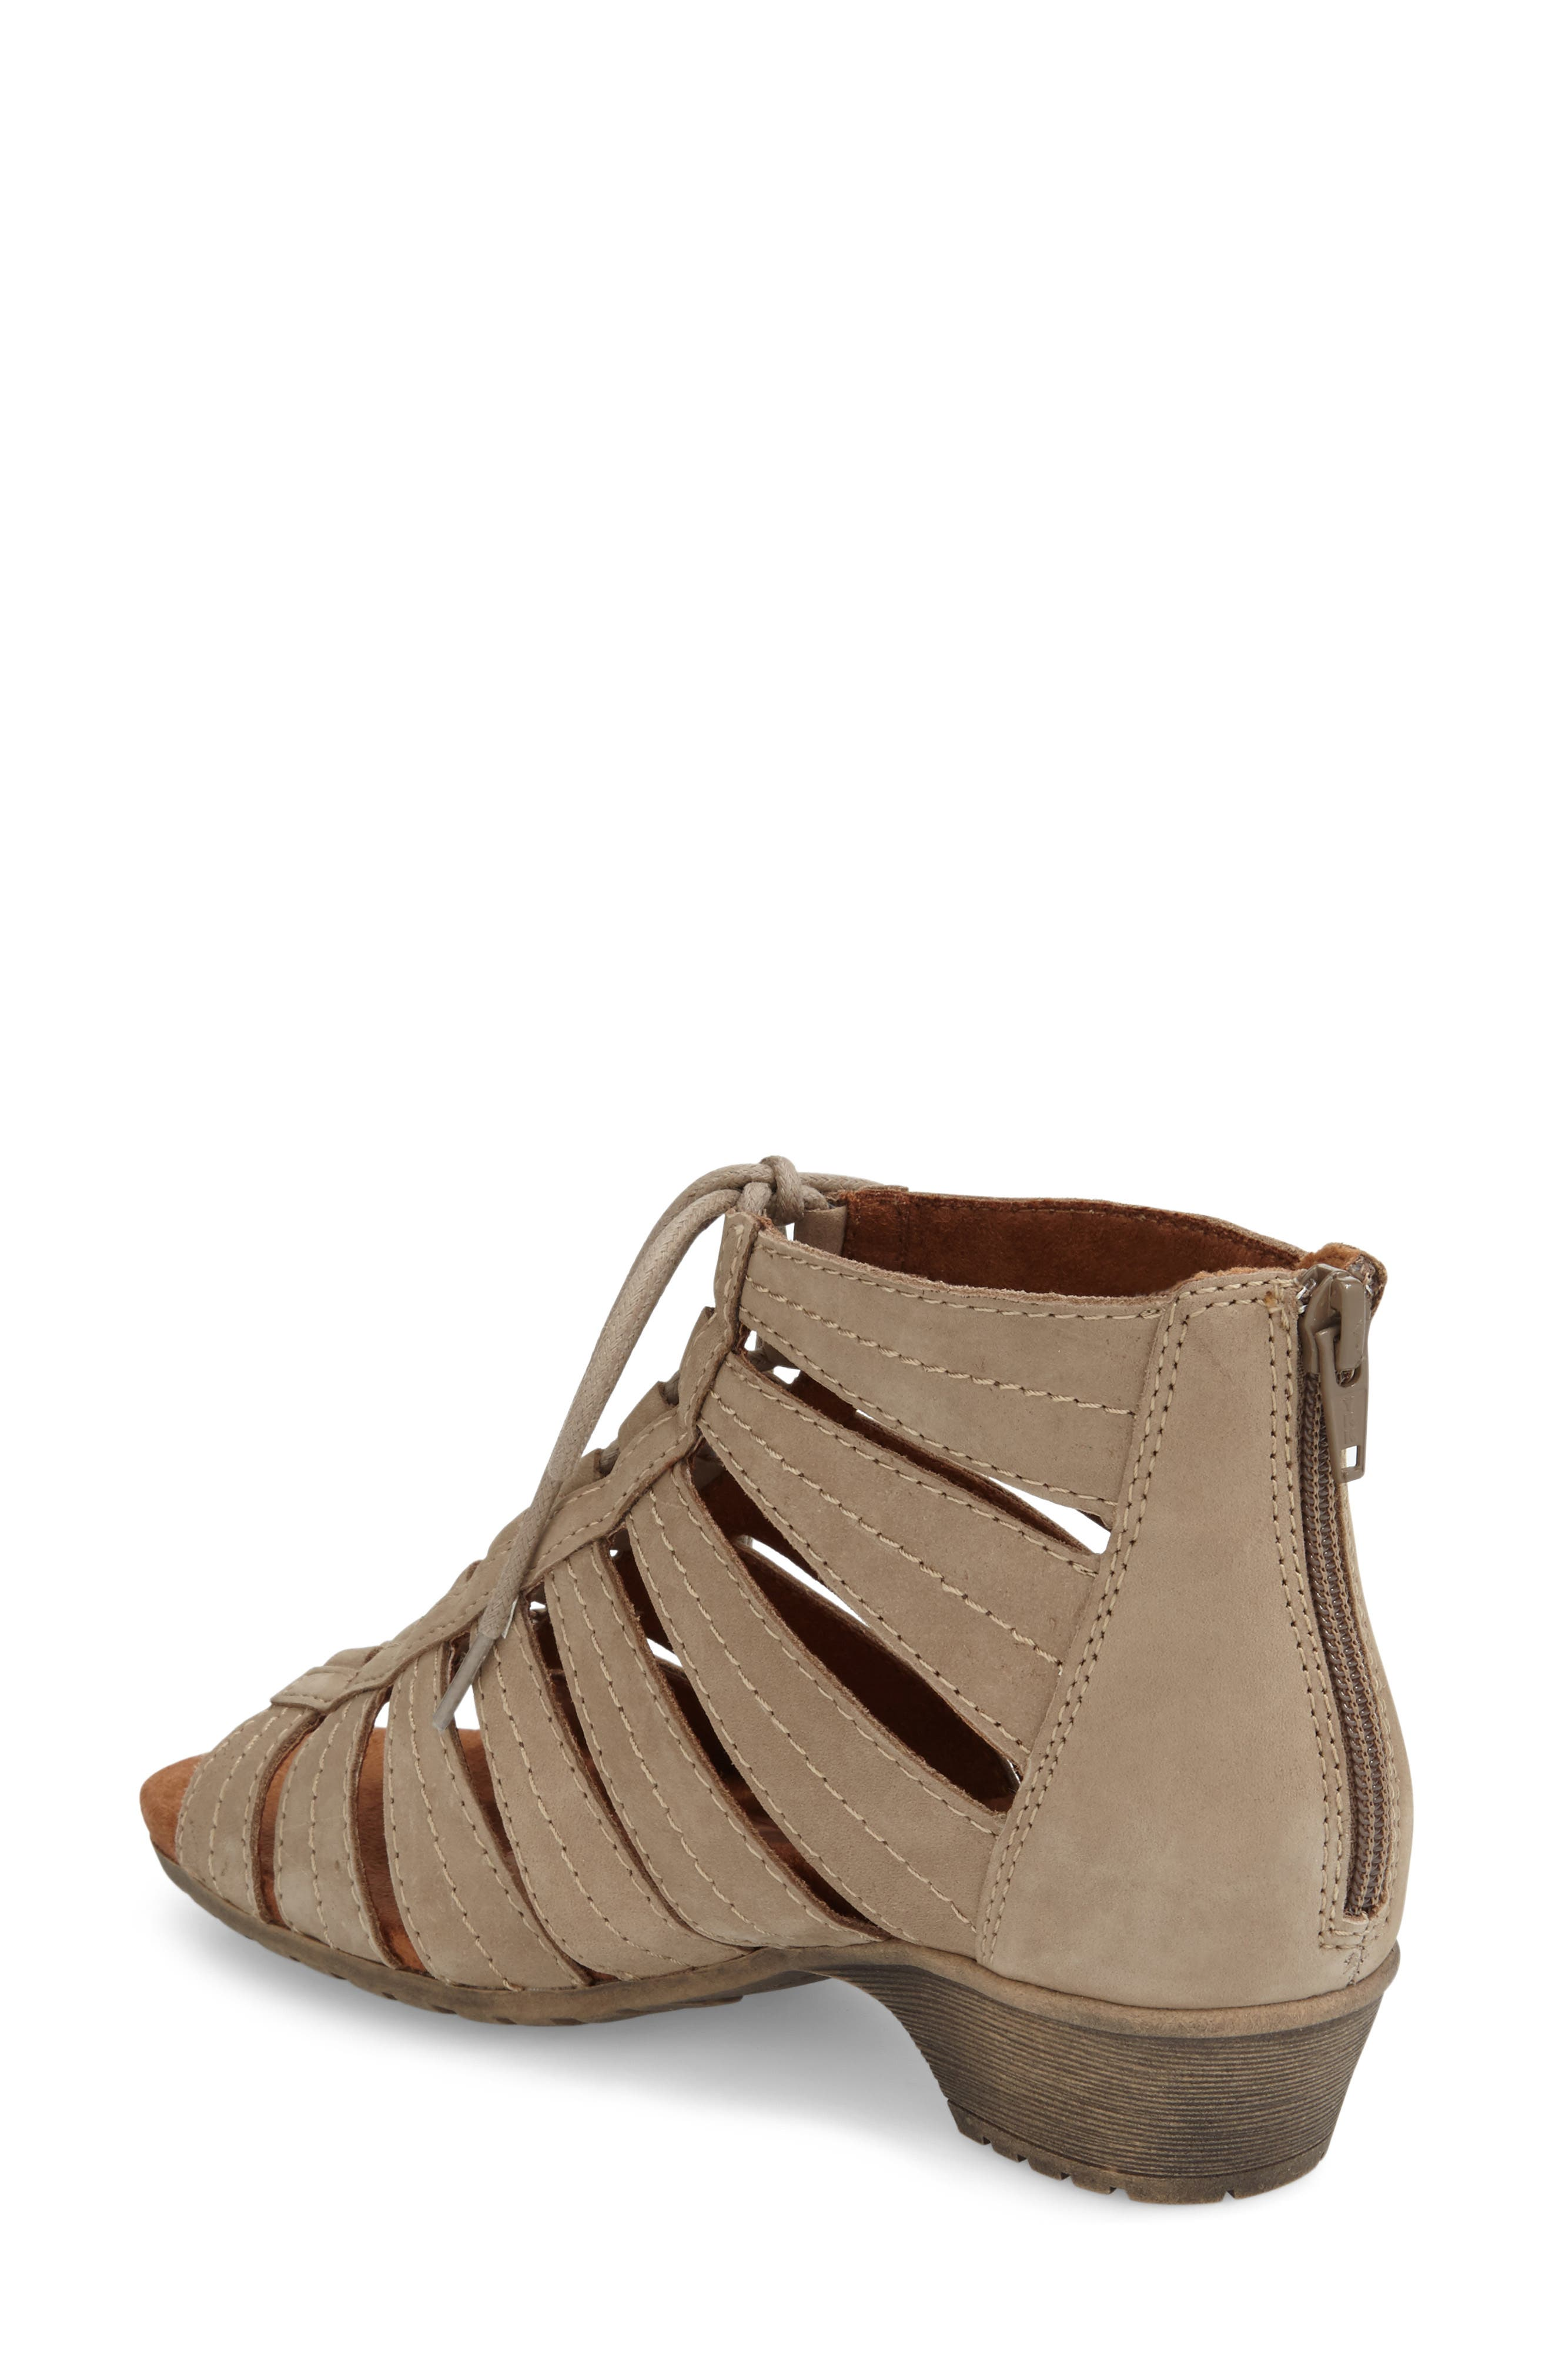 'Gabby' Lace-Up Sandal,                             Alternate thumbnail 22, color,